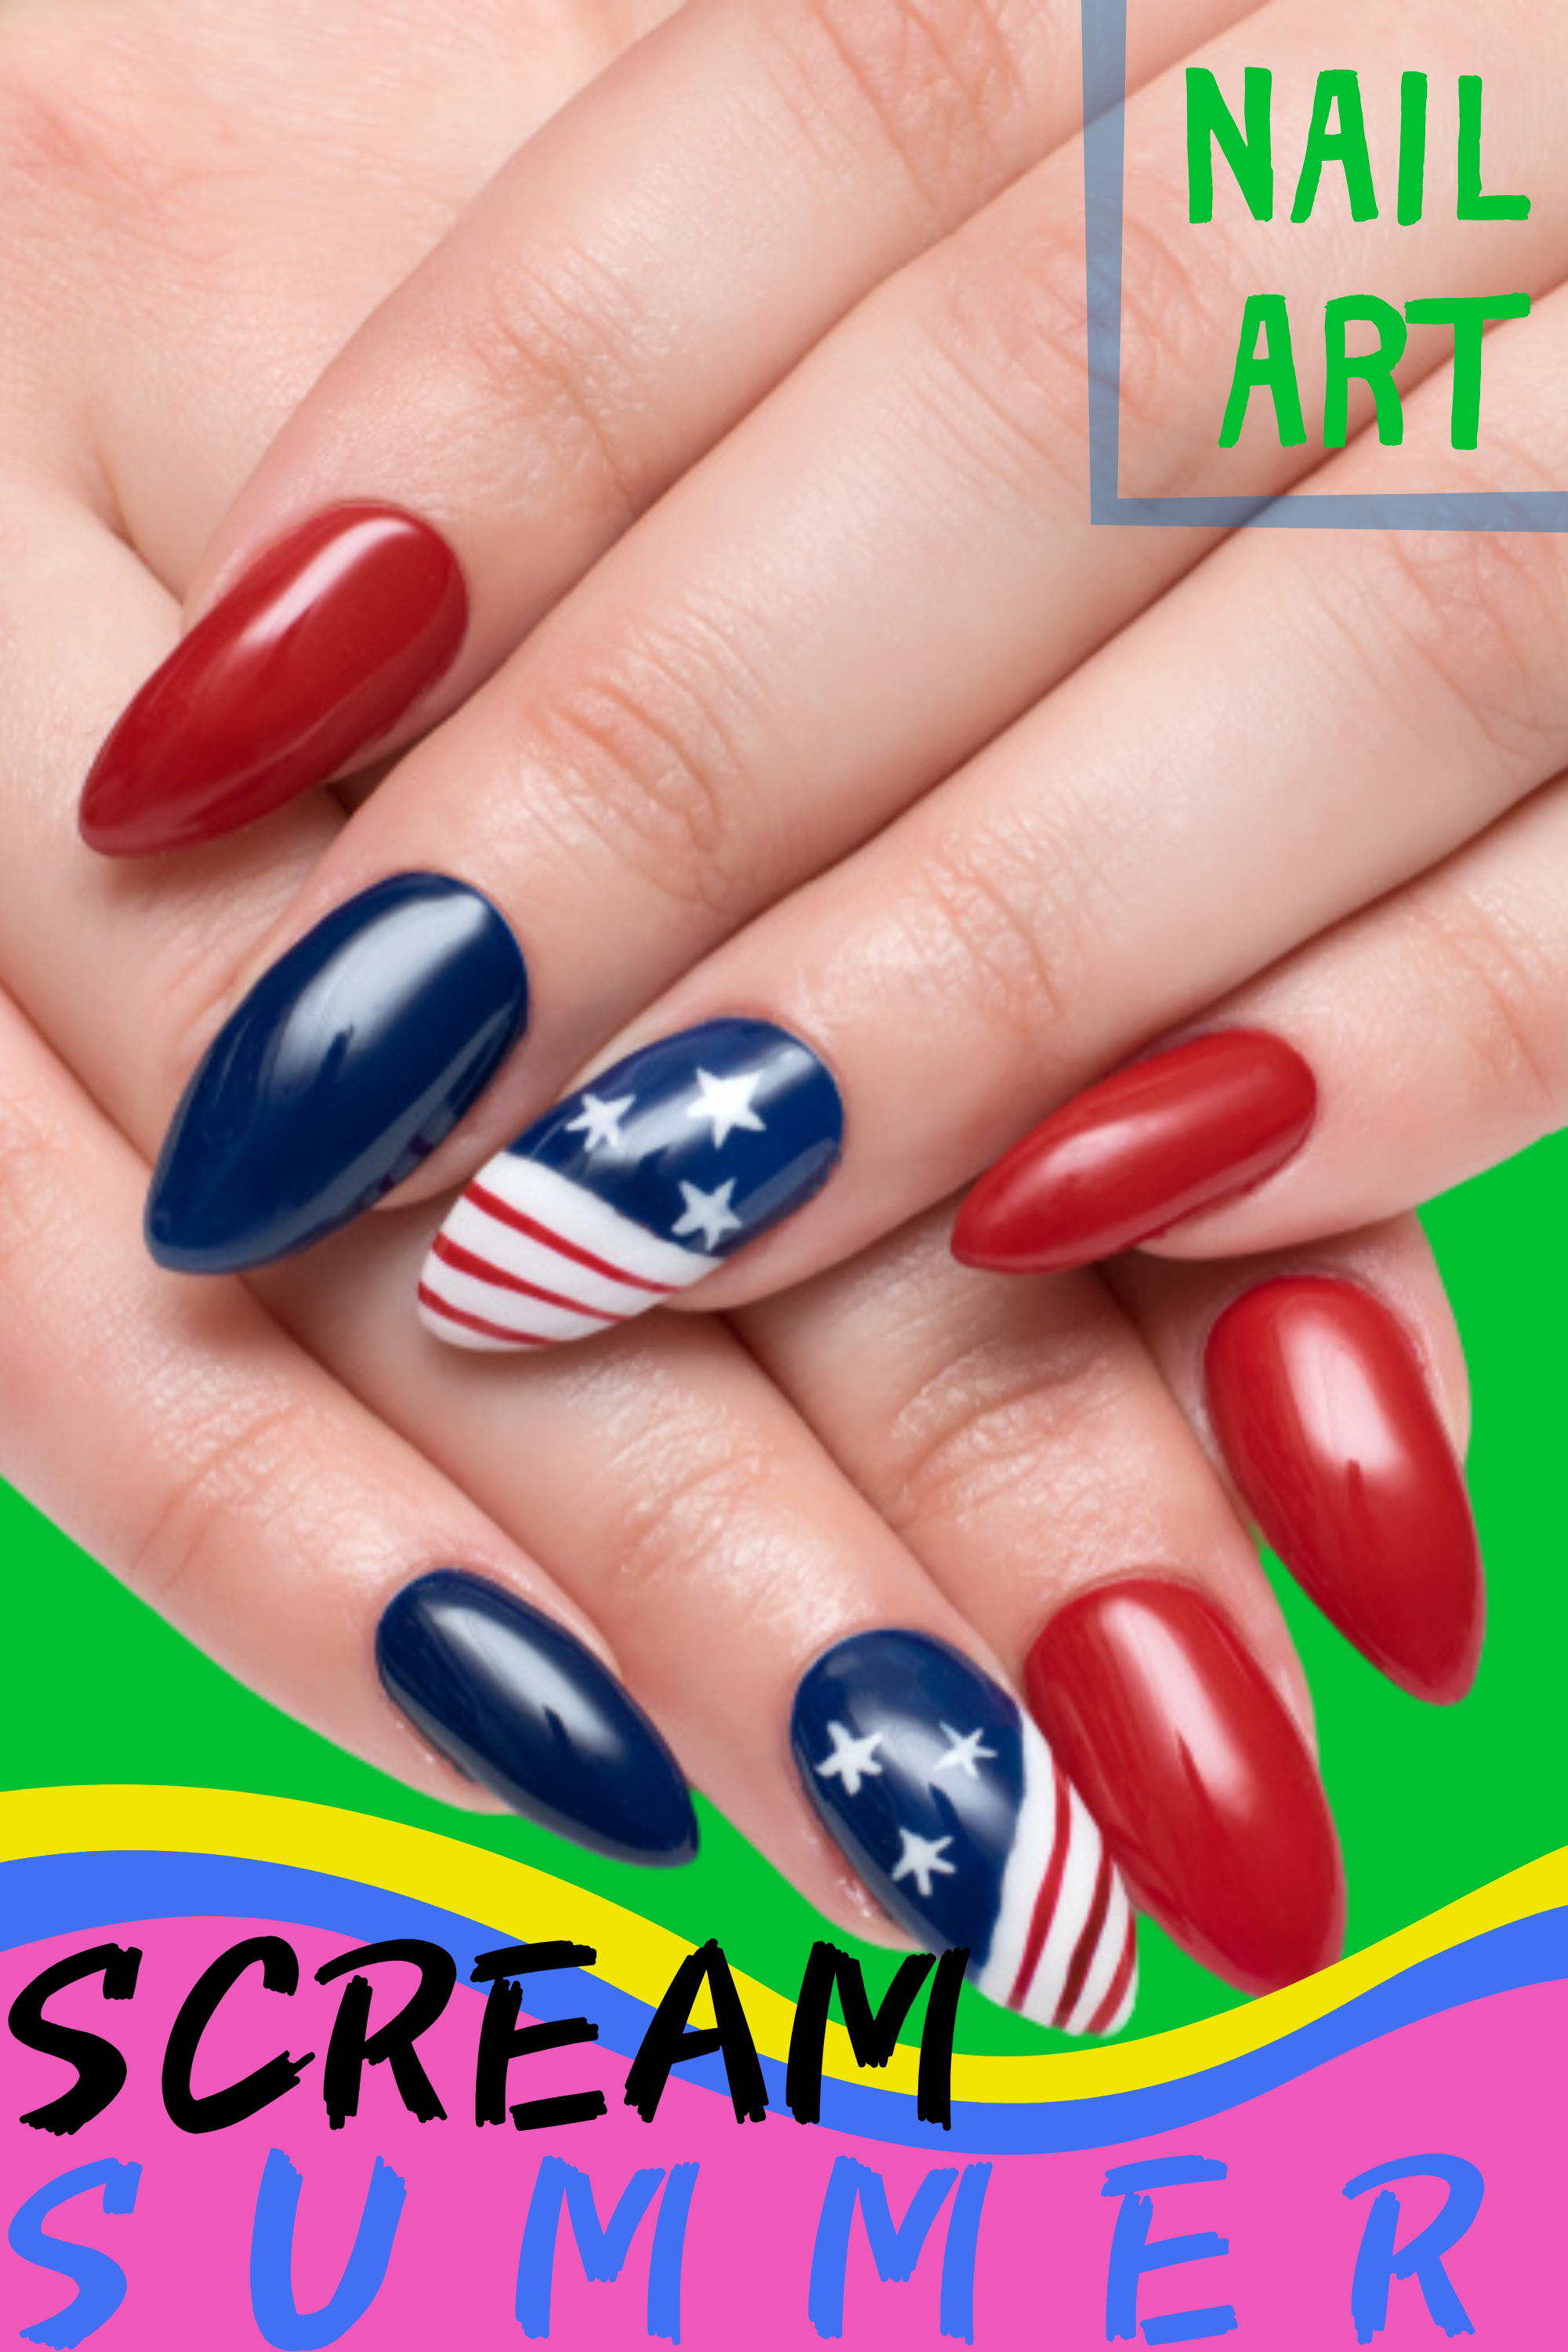 Summer Nails 2020 Color Trends Best Nail Art Trends From The Usa Uk For Summer 2020 In 2020 Nail Designs Summer Nails Nail Designs